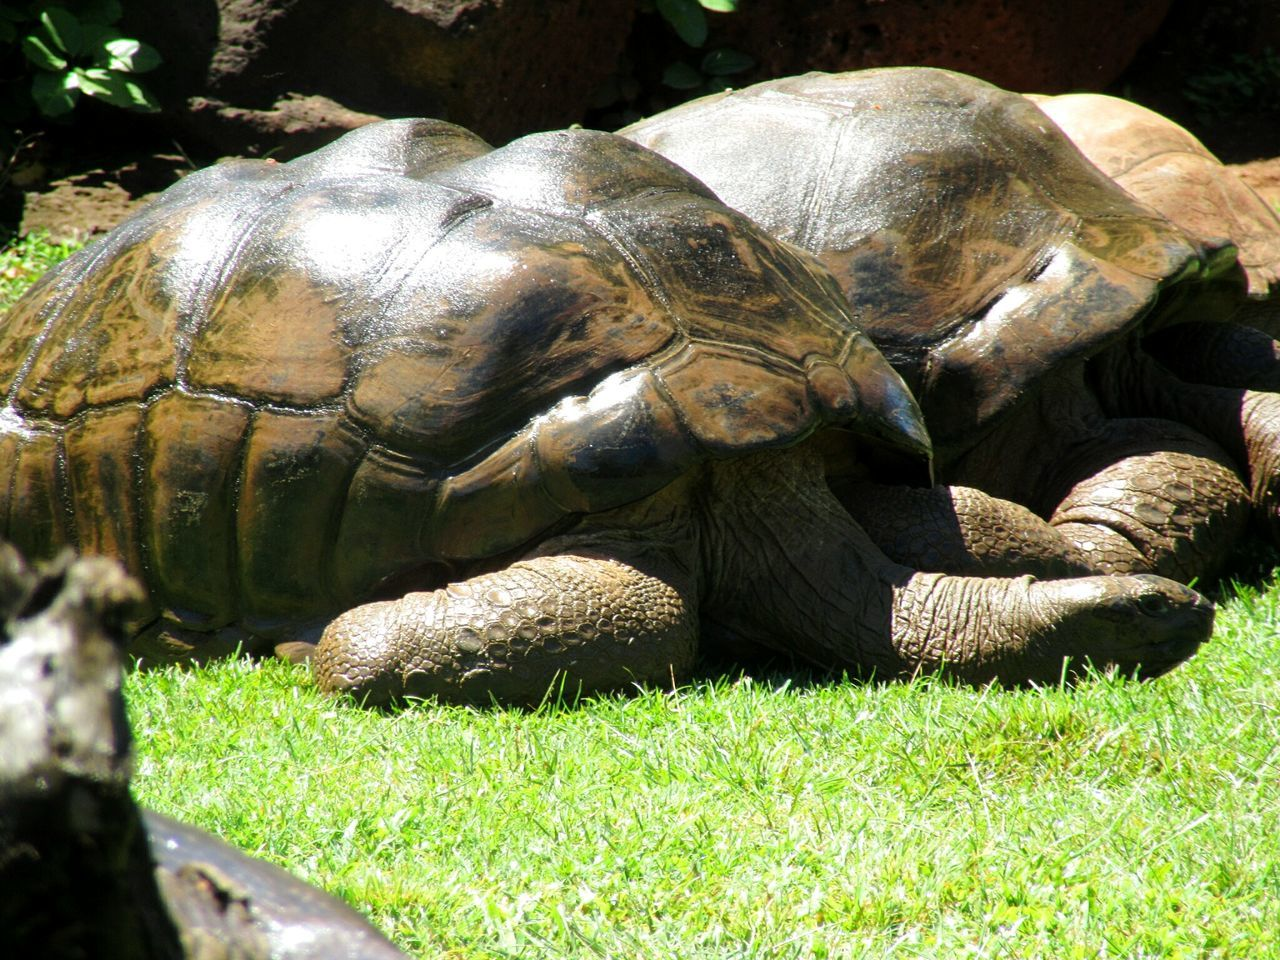 Animals In The Wild Grass Reptile Animal Themes Sunlight Nature Close-up Tortoise Tortoise Shell No People Backgrounds Reptile Collection Reptiles Of Eyeem Reptile Photography Zoo Animals  Grass Lying Down Honolulu Zoo Aldabra Giant Tortoise Giant Tortoise